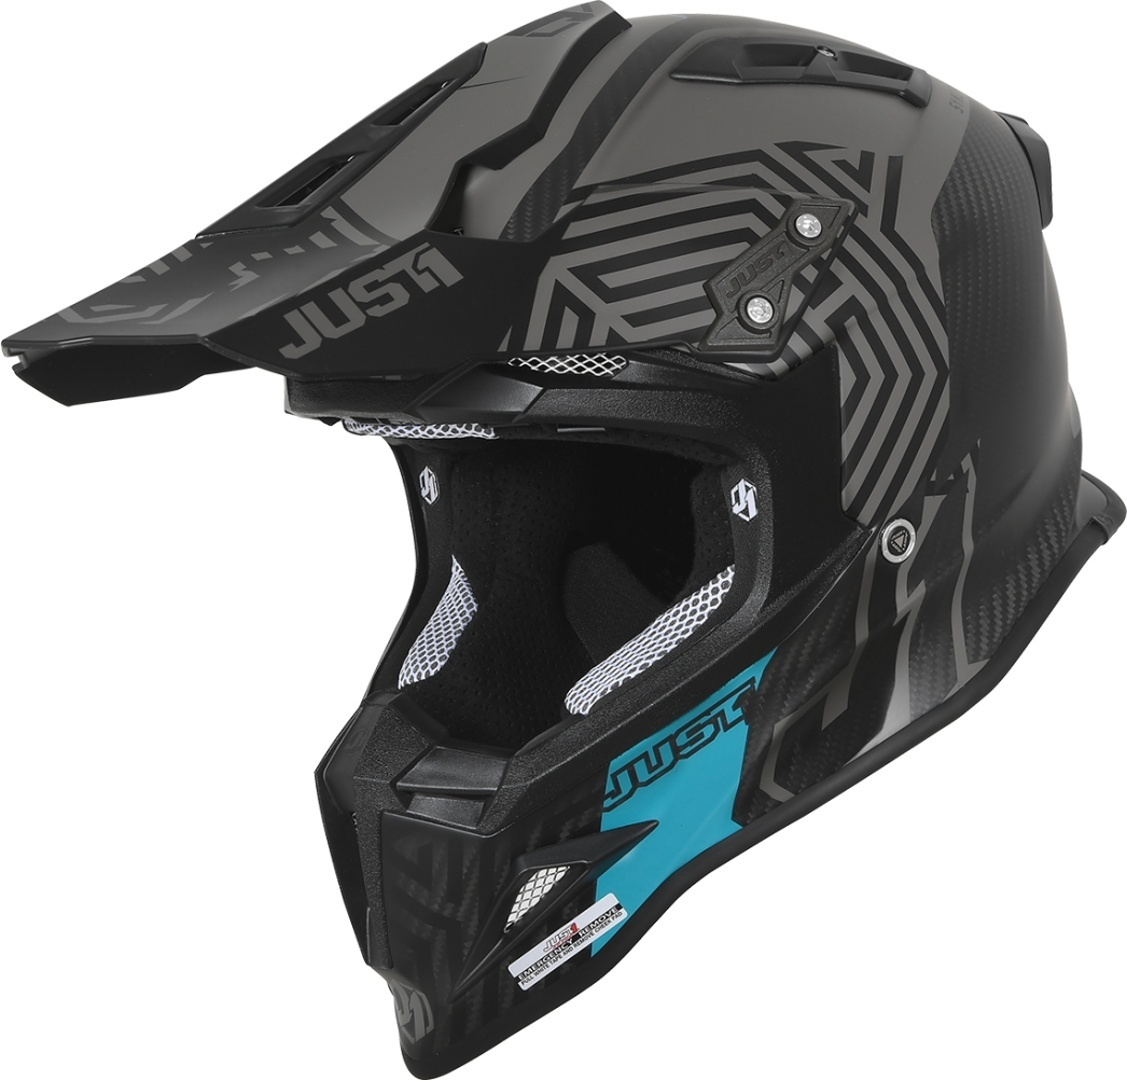 Just1 J12 Syncro Carbon Motocross Helm, schwarz-lila, Größe XS, schwarz-lila, Größe XS